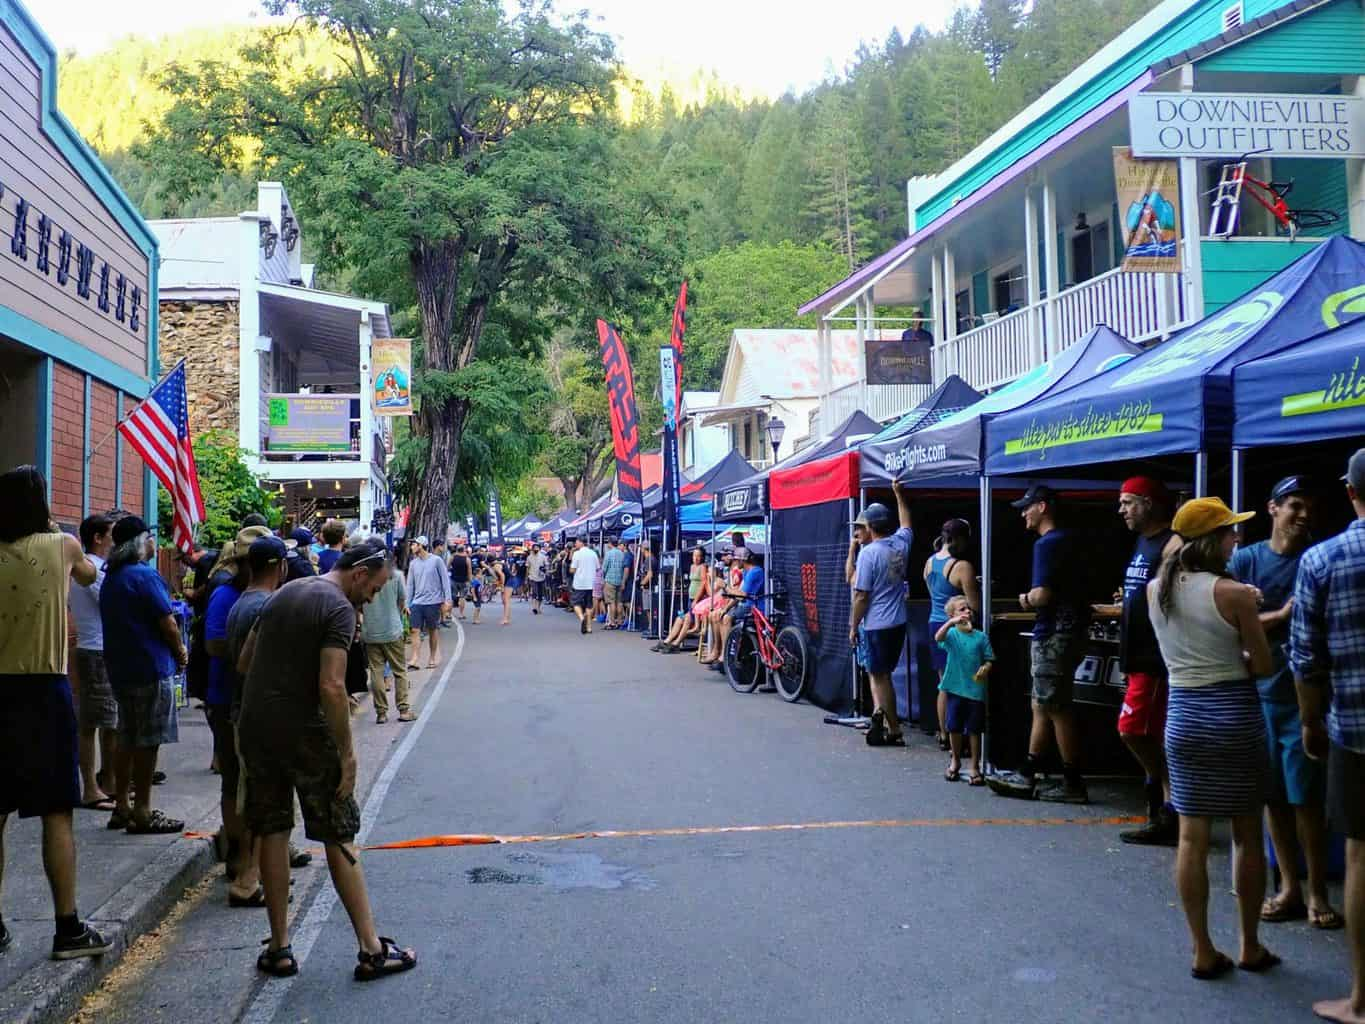 Spectators lining the streets for the Downieville Classic.